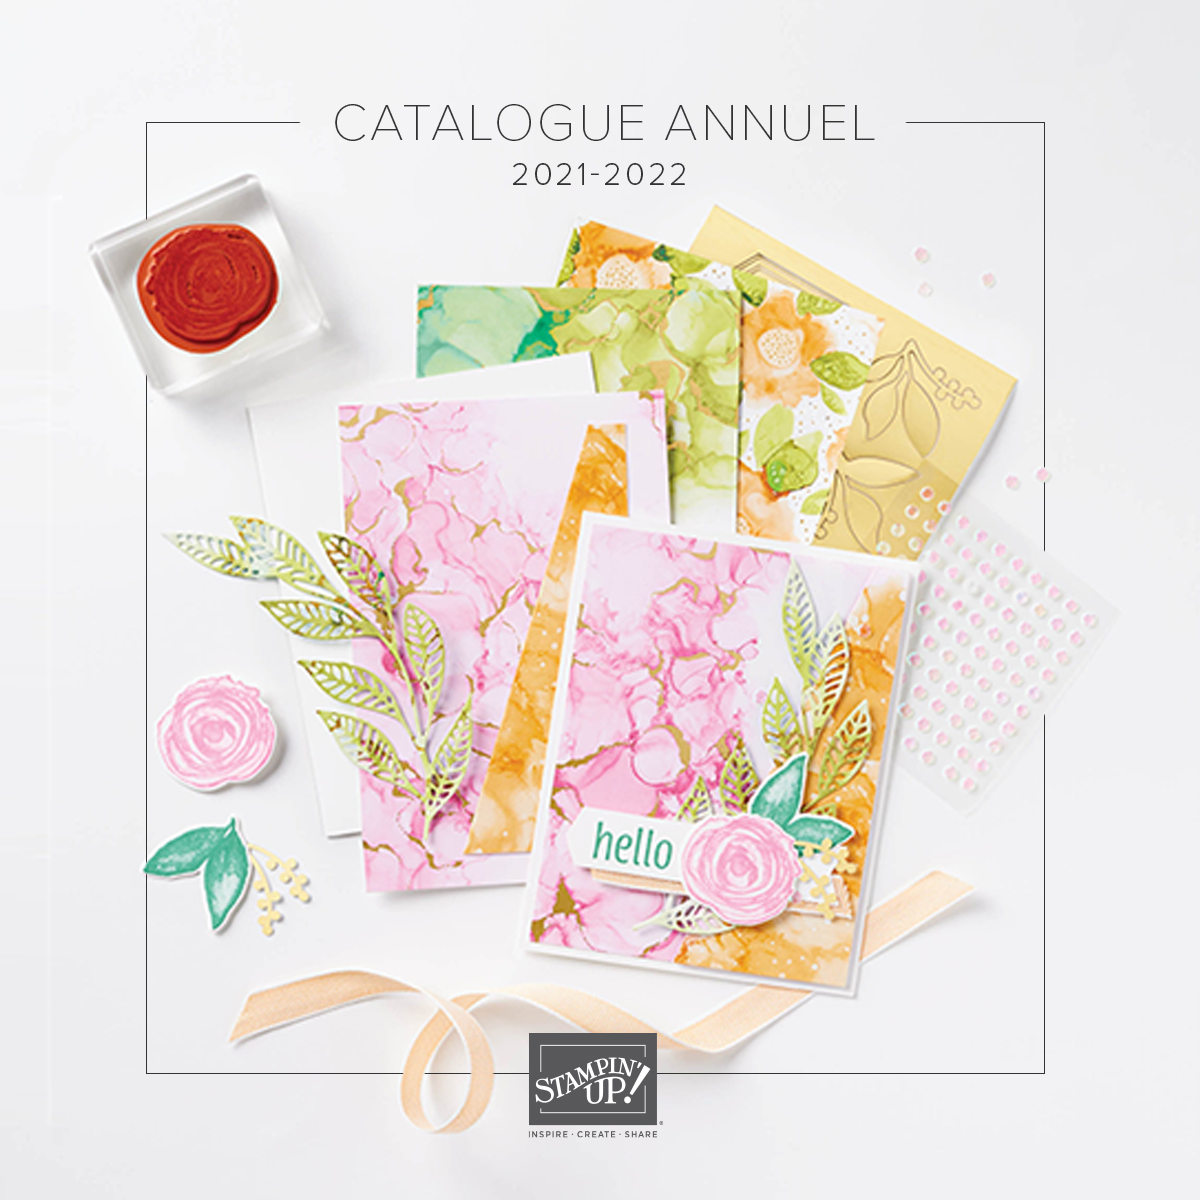 Couverture du catalogue 2021-2022